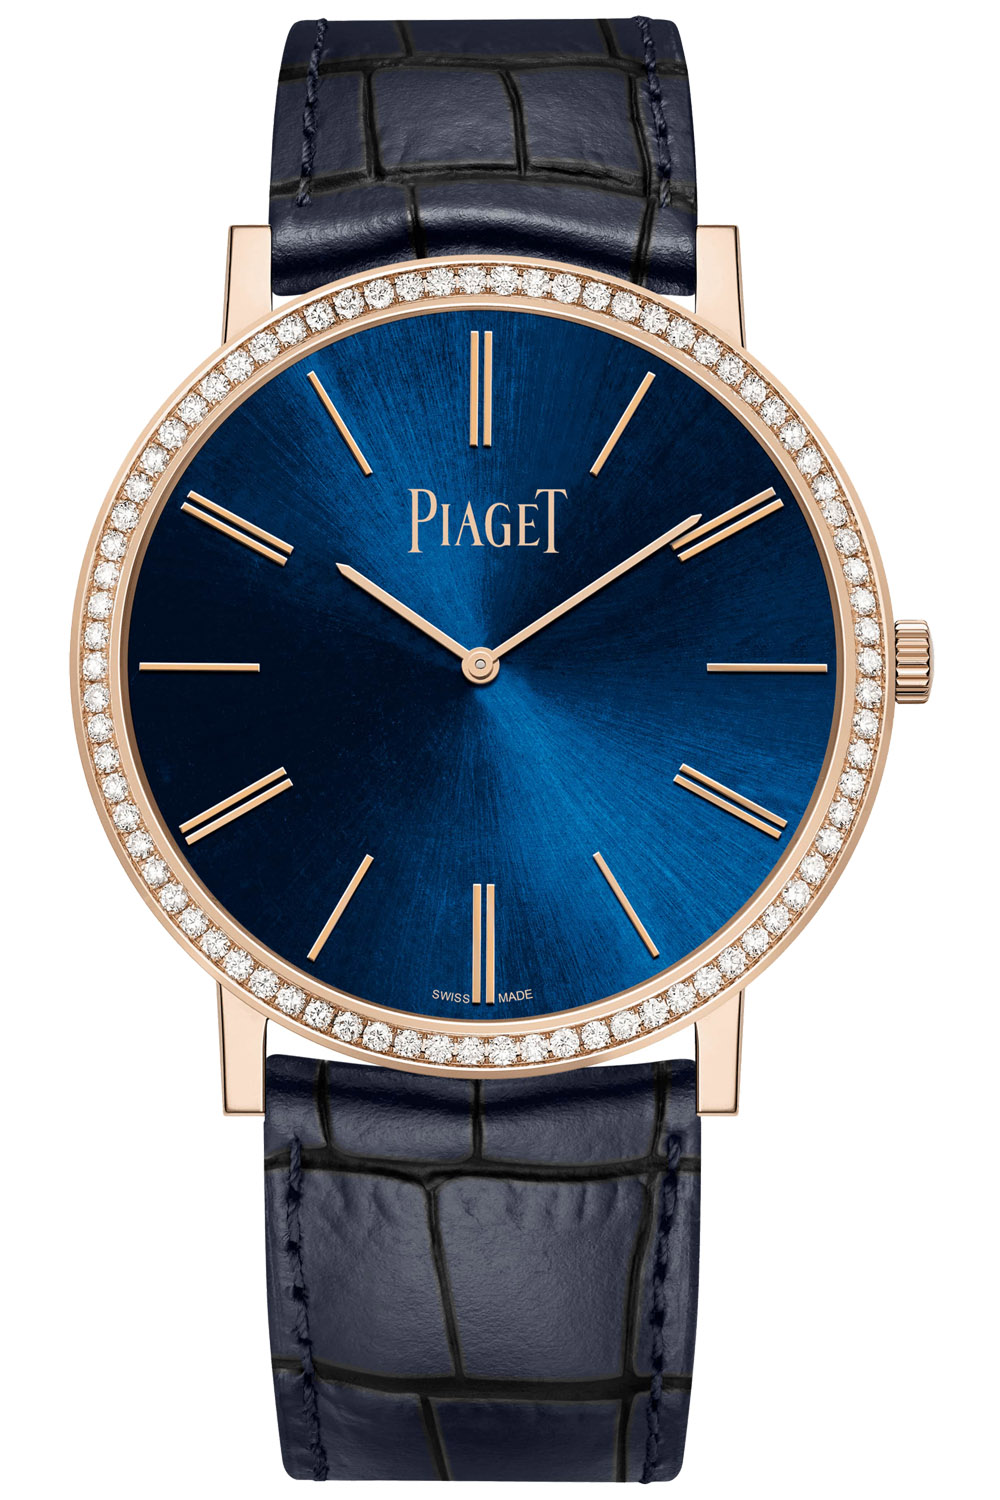 Piaget Altiplano 38mm Hand-Wound Blue Dial Pink Gold - 2020 new - G0A45051